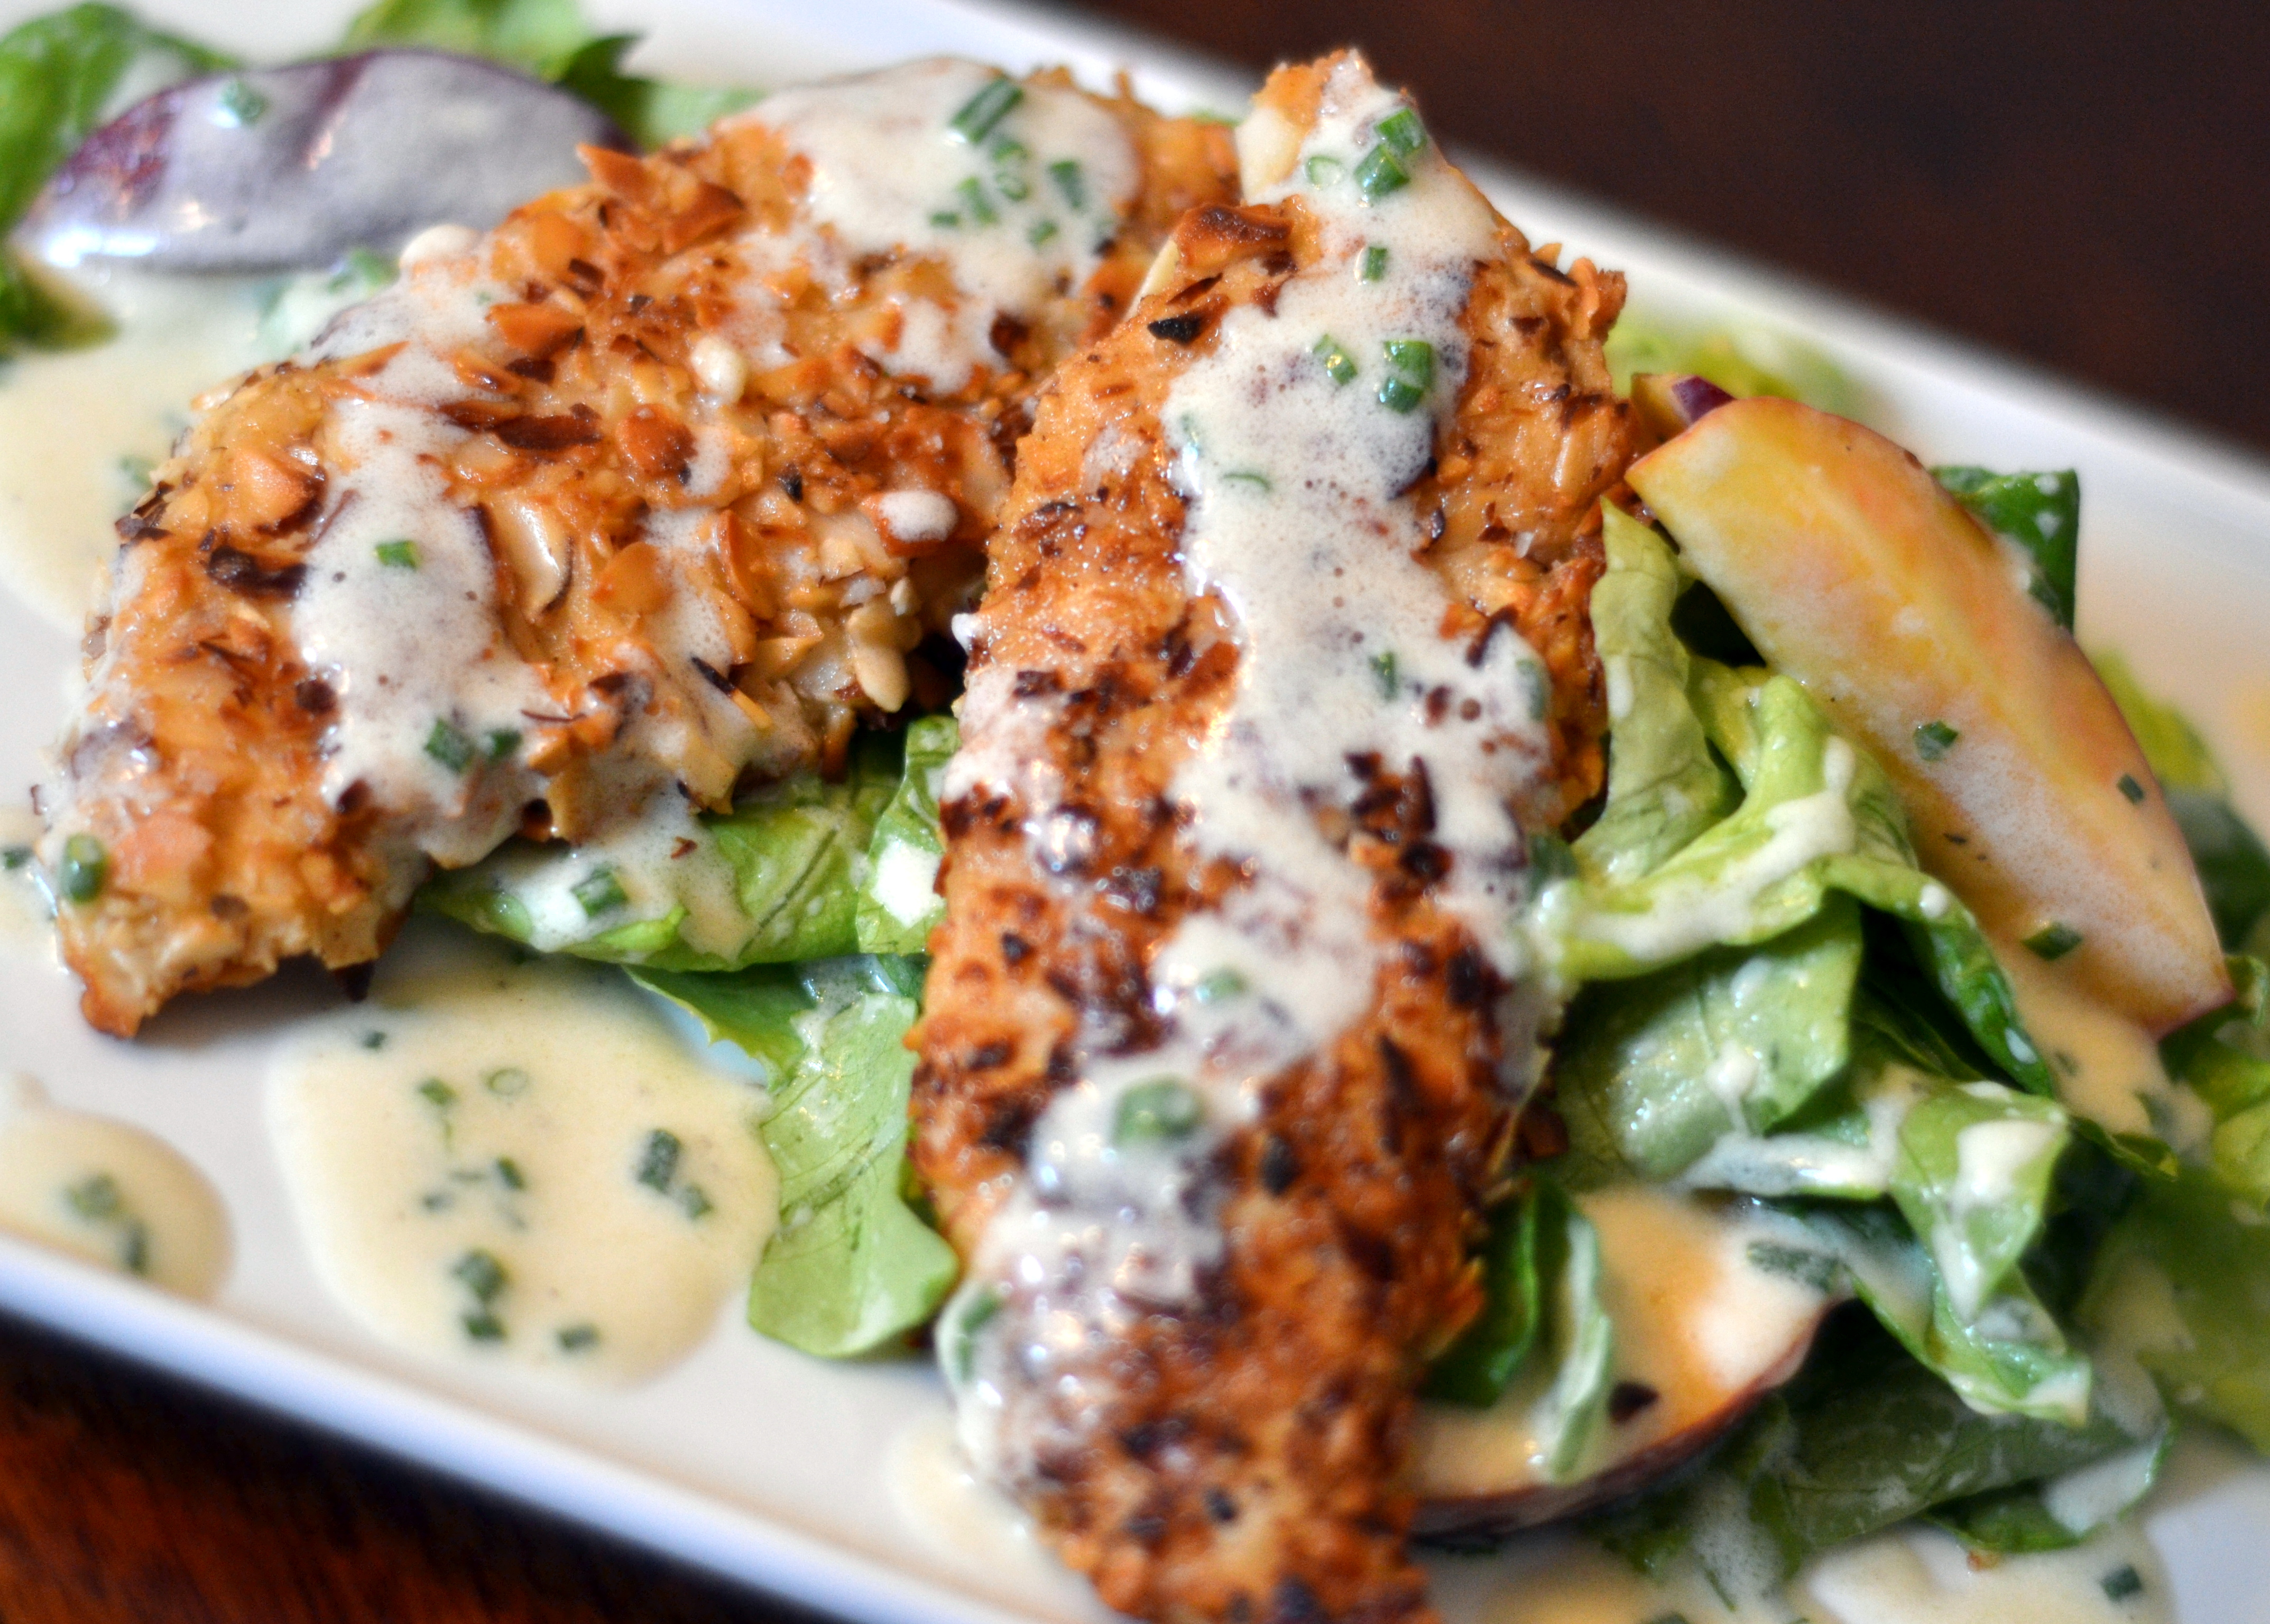 Almond Crusted Chicken and Peach Salad with Buttermilk-Balsamic Dressing